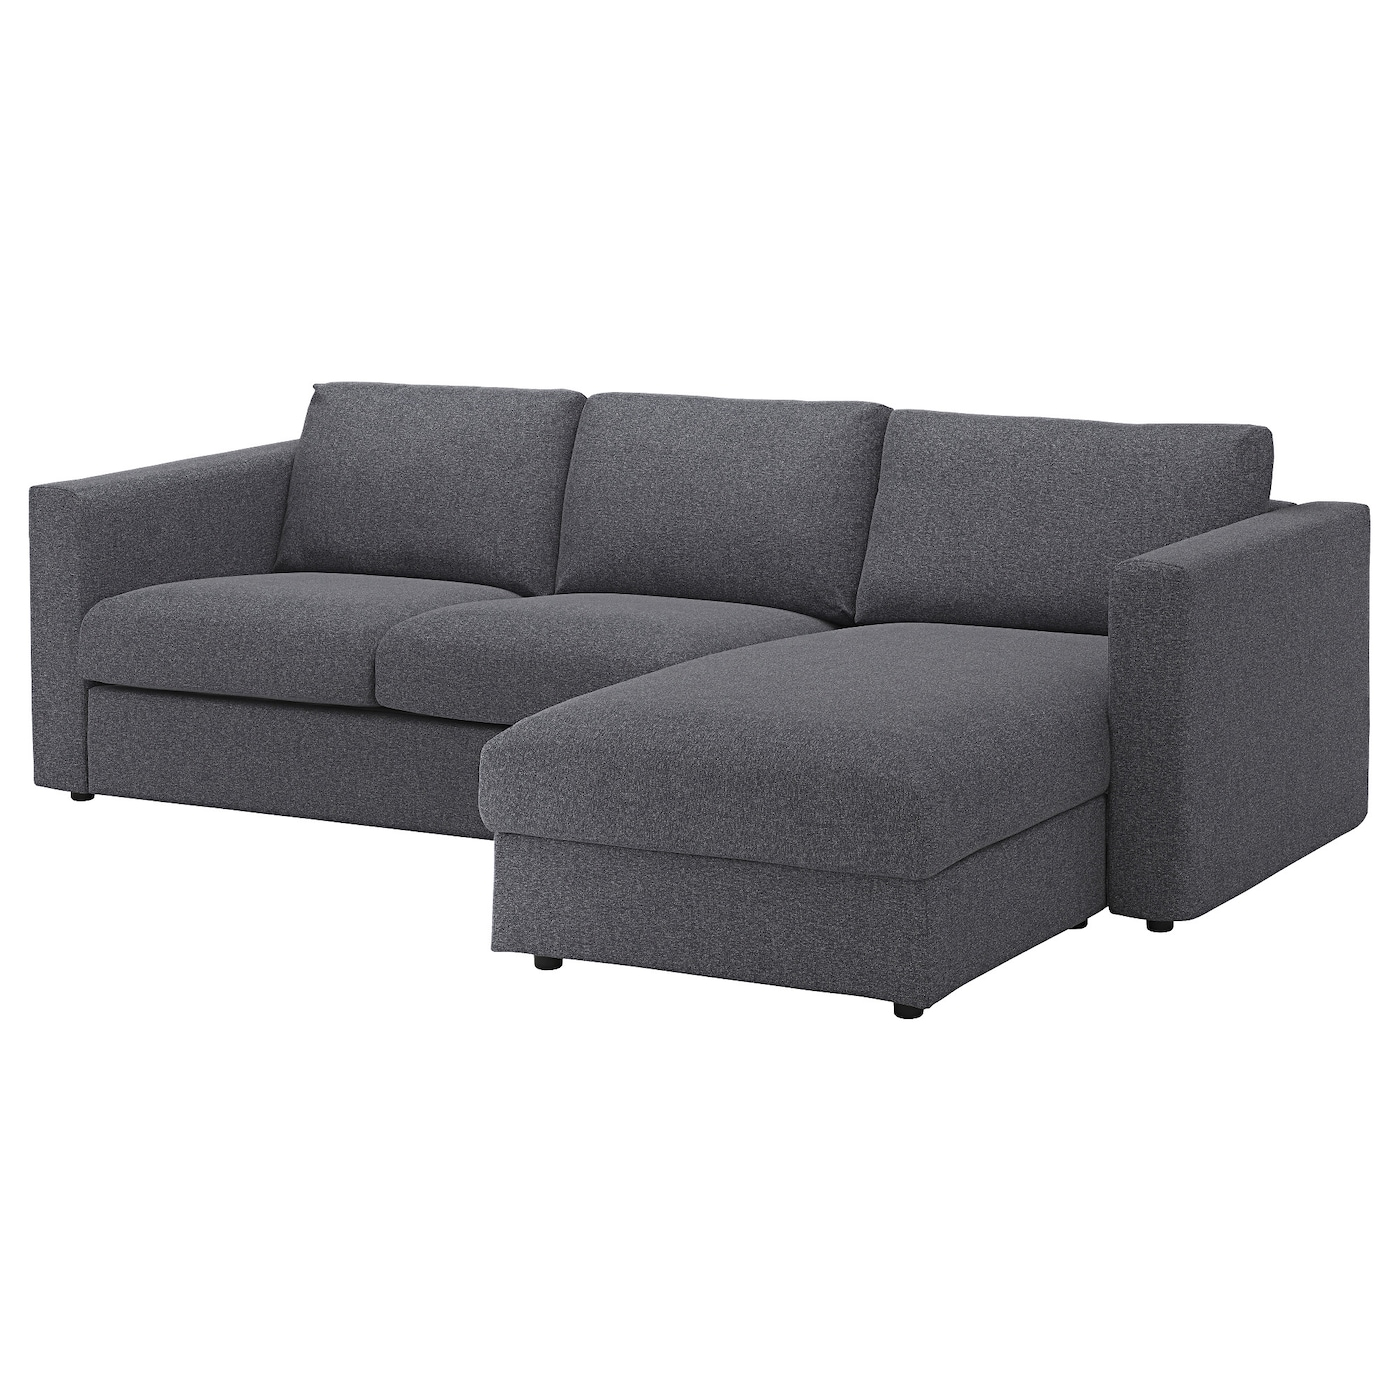 Vimle 3 seat sofa with chaise longue gunnared medium grey for Chaise longue style sofa